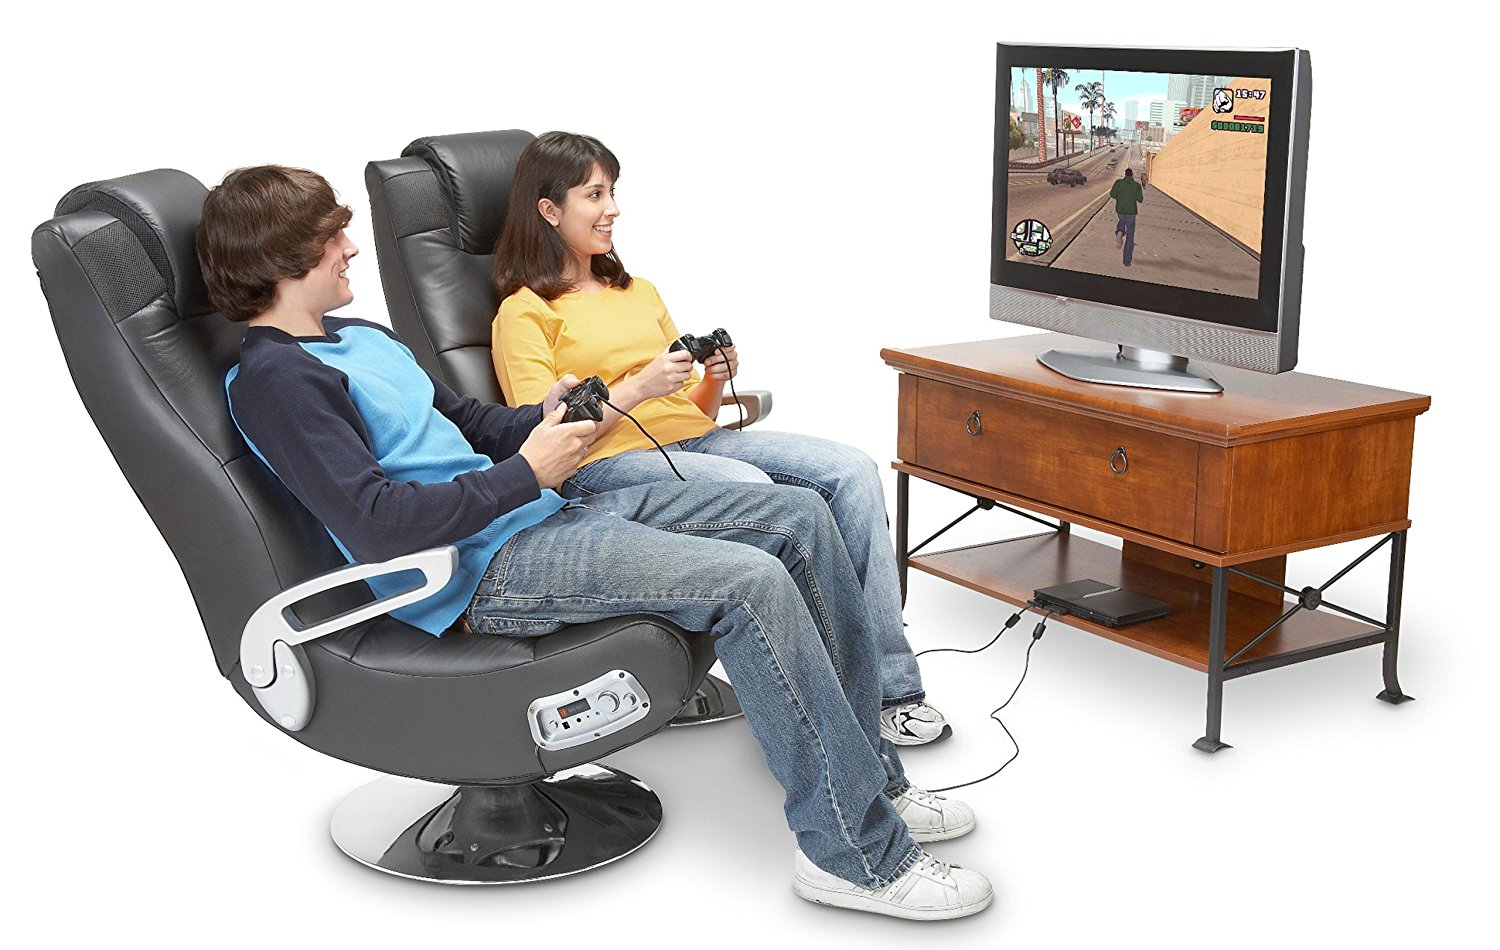 ergonomic office chair amazon with Cheap Gaming Chair For Pc Under 200 on Best Leather Recliner Gaming Chairs For Kids Adults furthermore Best Ergonomic Office Chairs in addition Herman Miller Desk Chairs Office Chairs Miller 3 Office Chair Miller Leather Desk Chairs A Herman Miller Aeron Chair Remove Base Instructions also Bar Stools With Wheels also Desk Chairs Without Wheels.